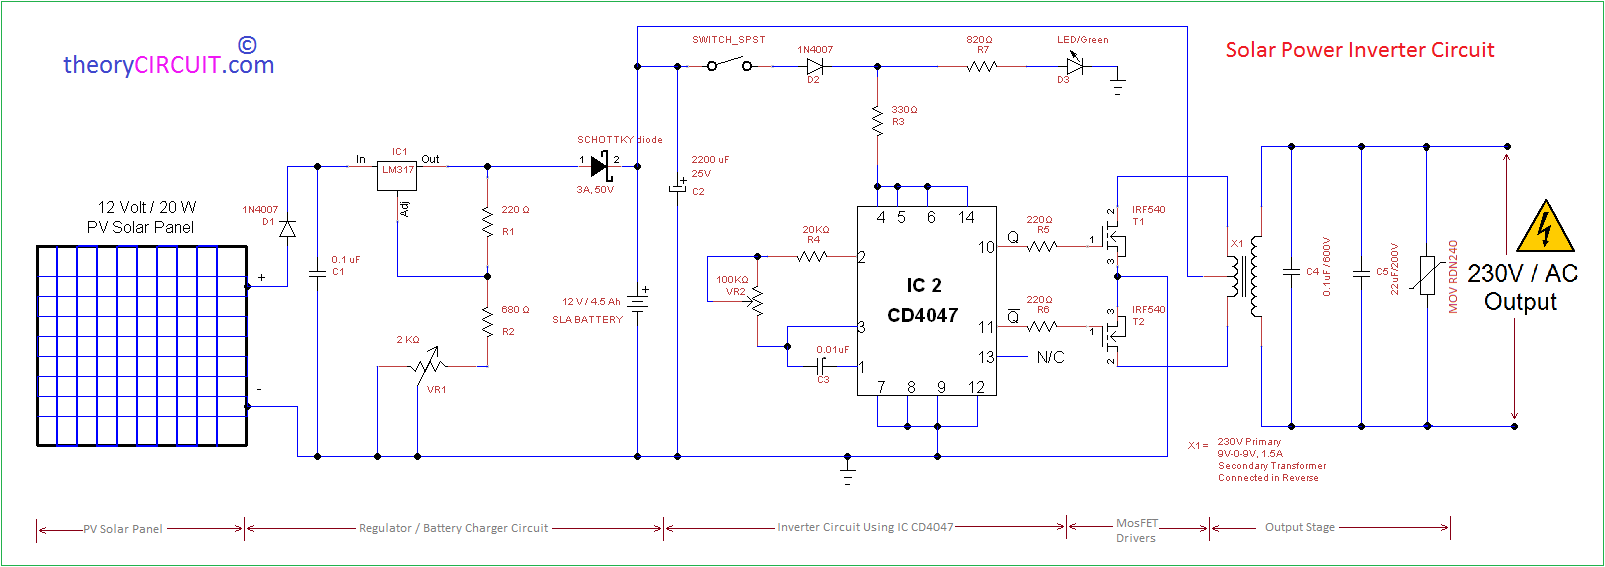 Solar Power Inverter Wiring Diagram from theorycircuit.com